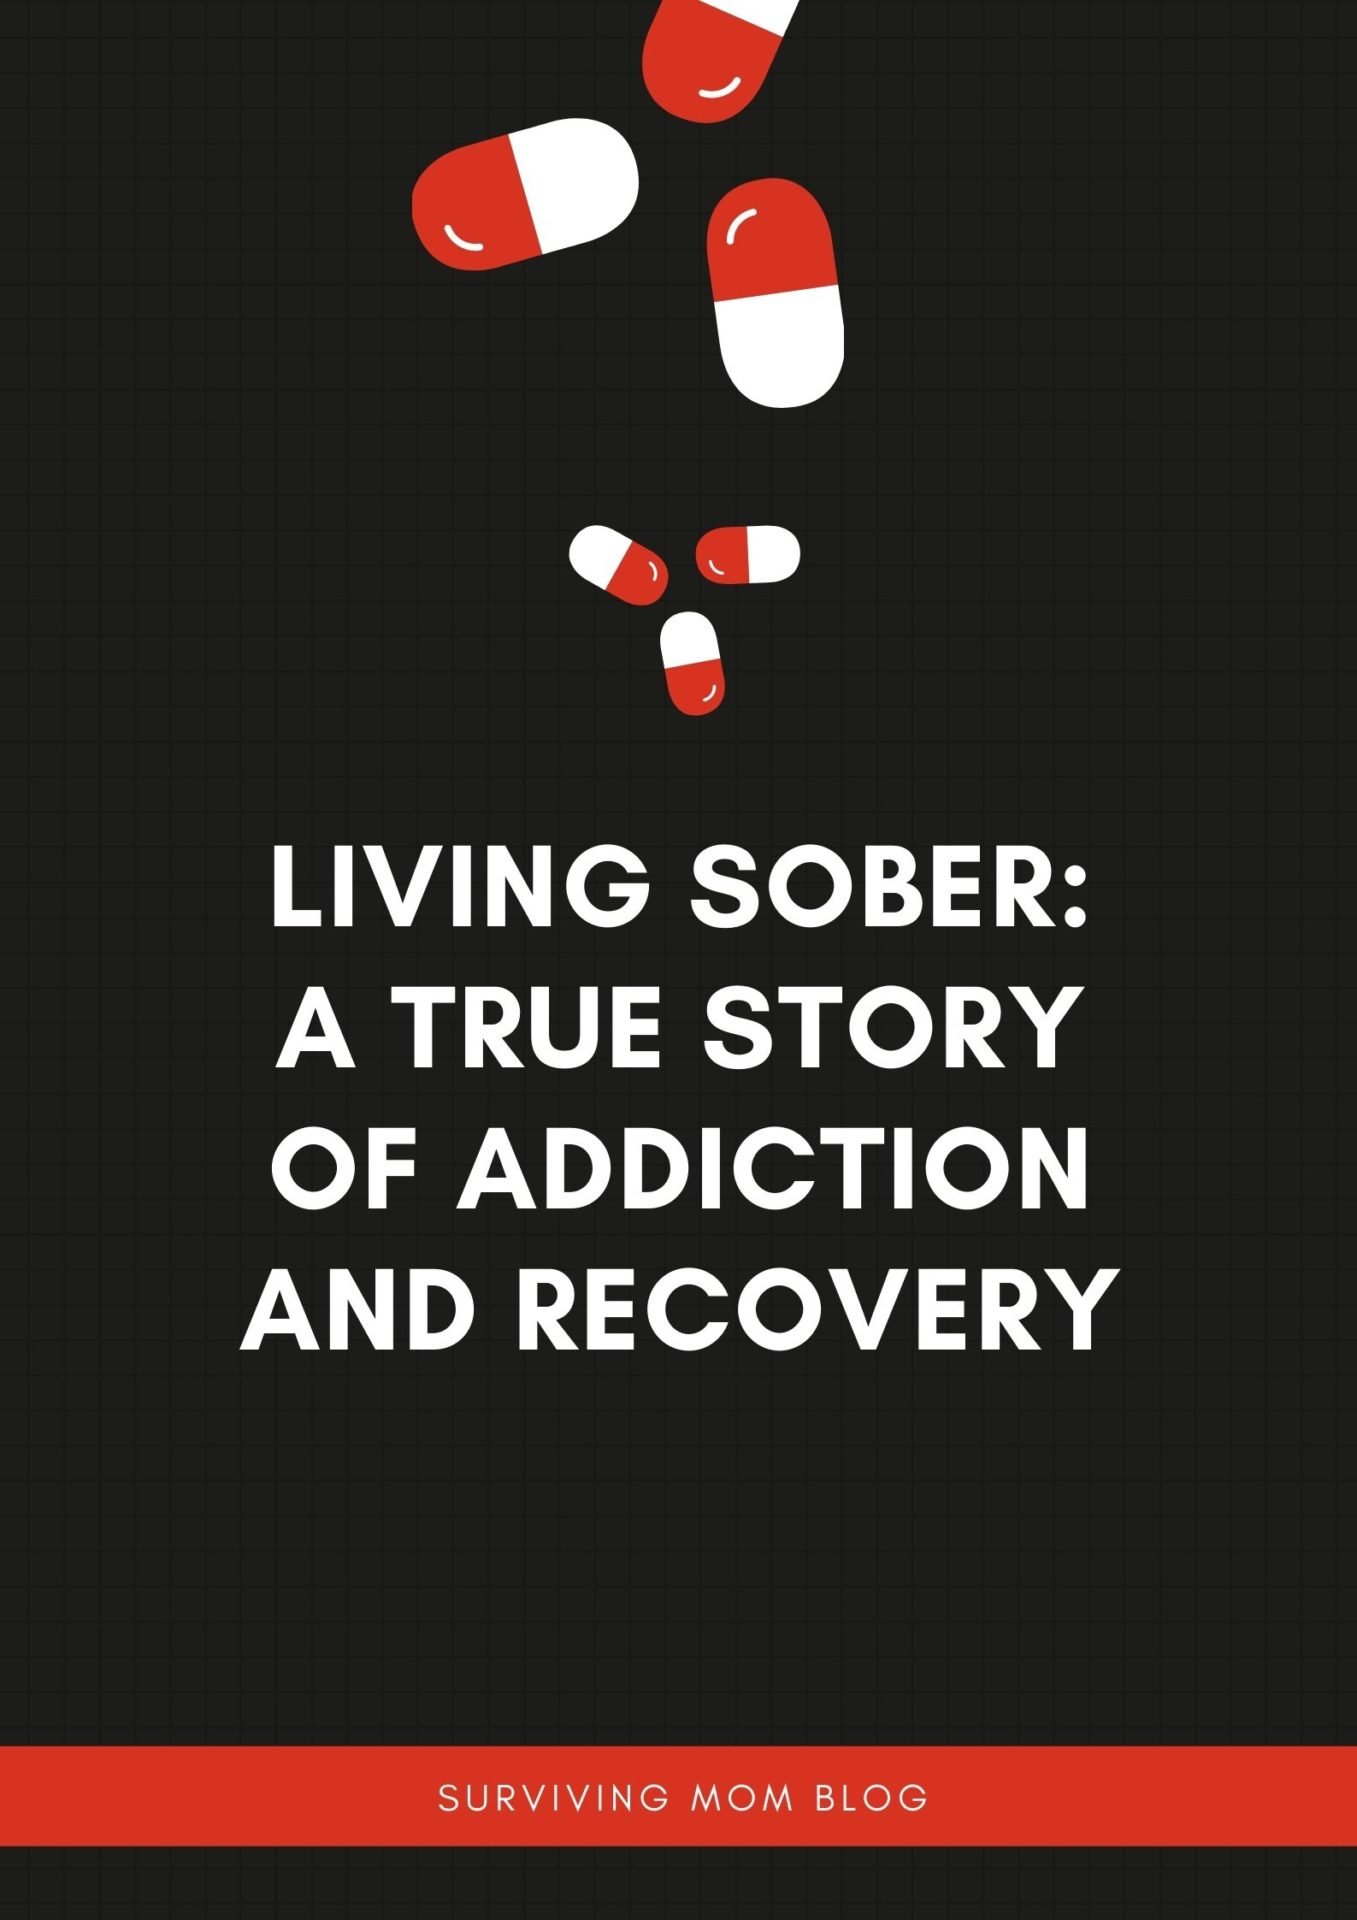 My Personal Story of Addiction and Process of Recovery